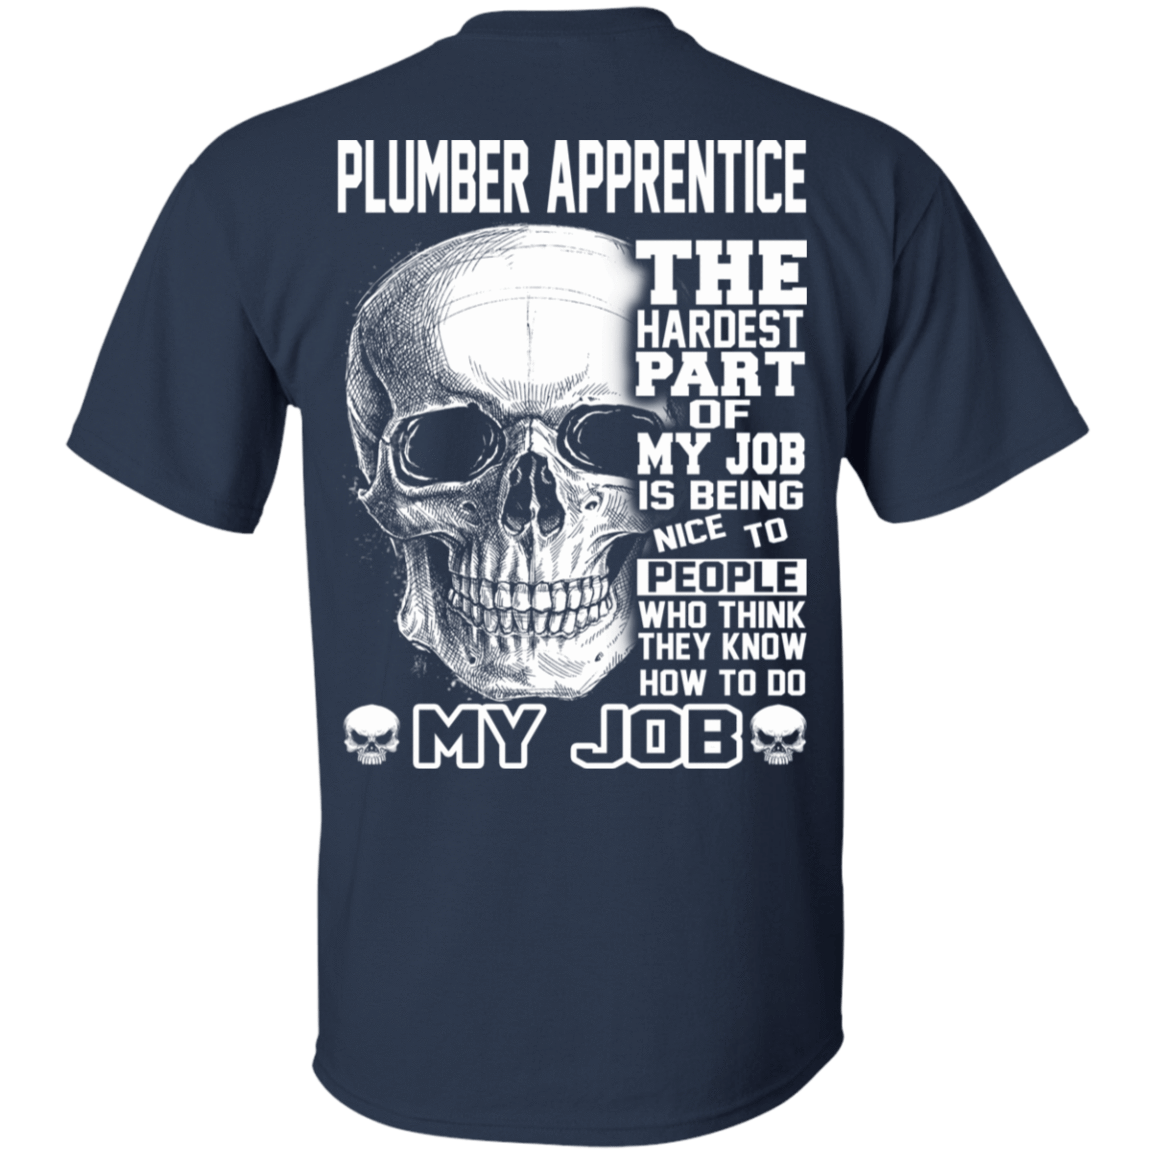 Plumber Apprentice The Hardest Part Of My Job 22-111-72369945-250 - Tee Ript